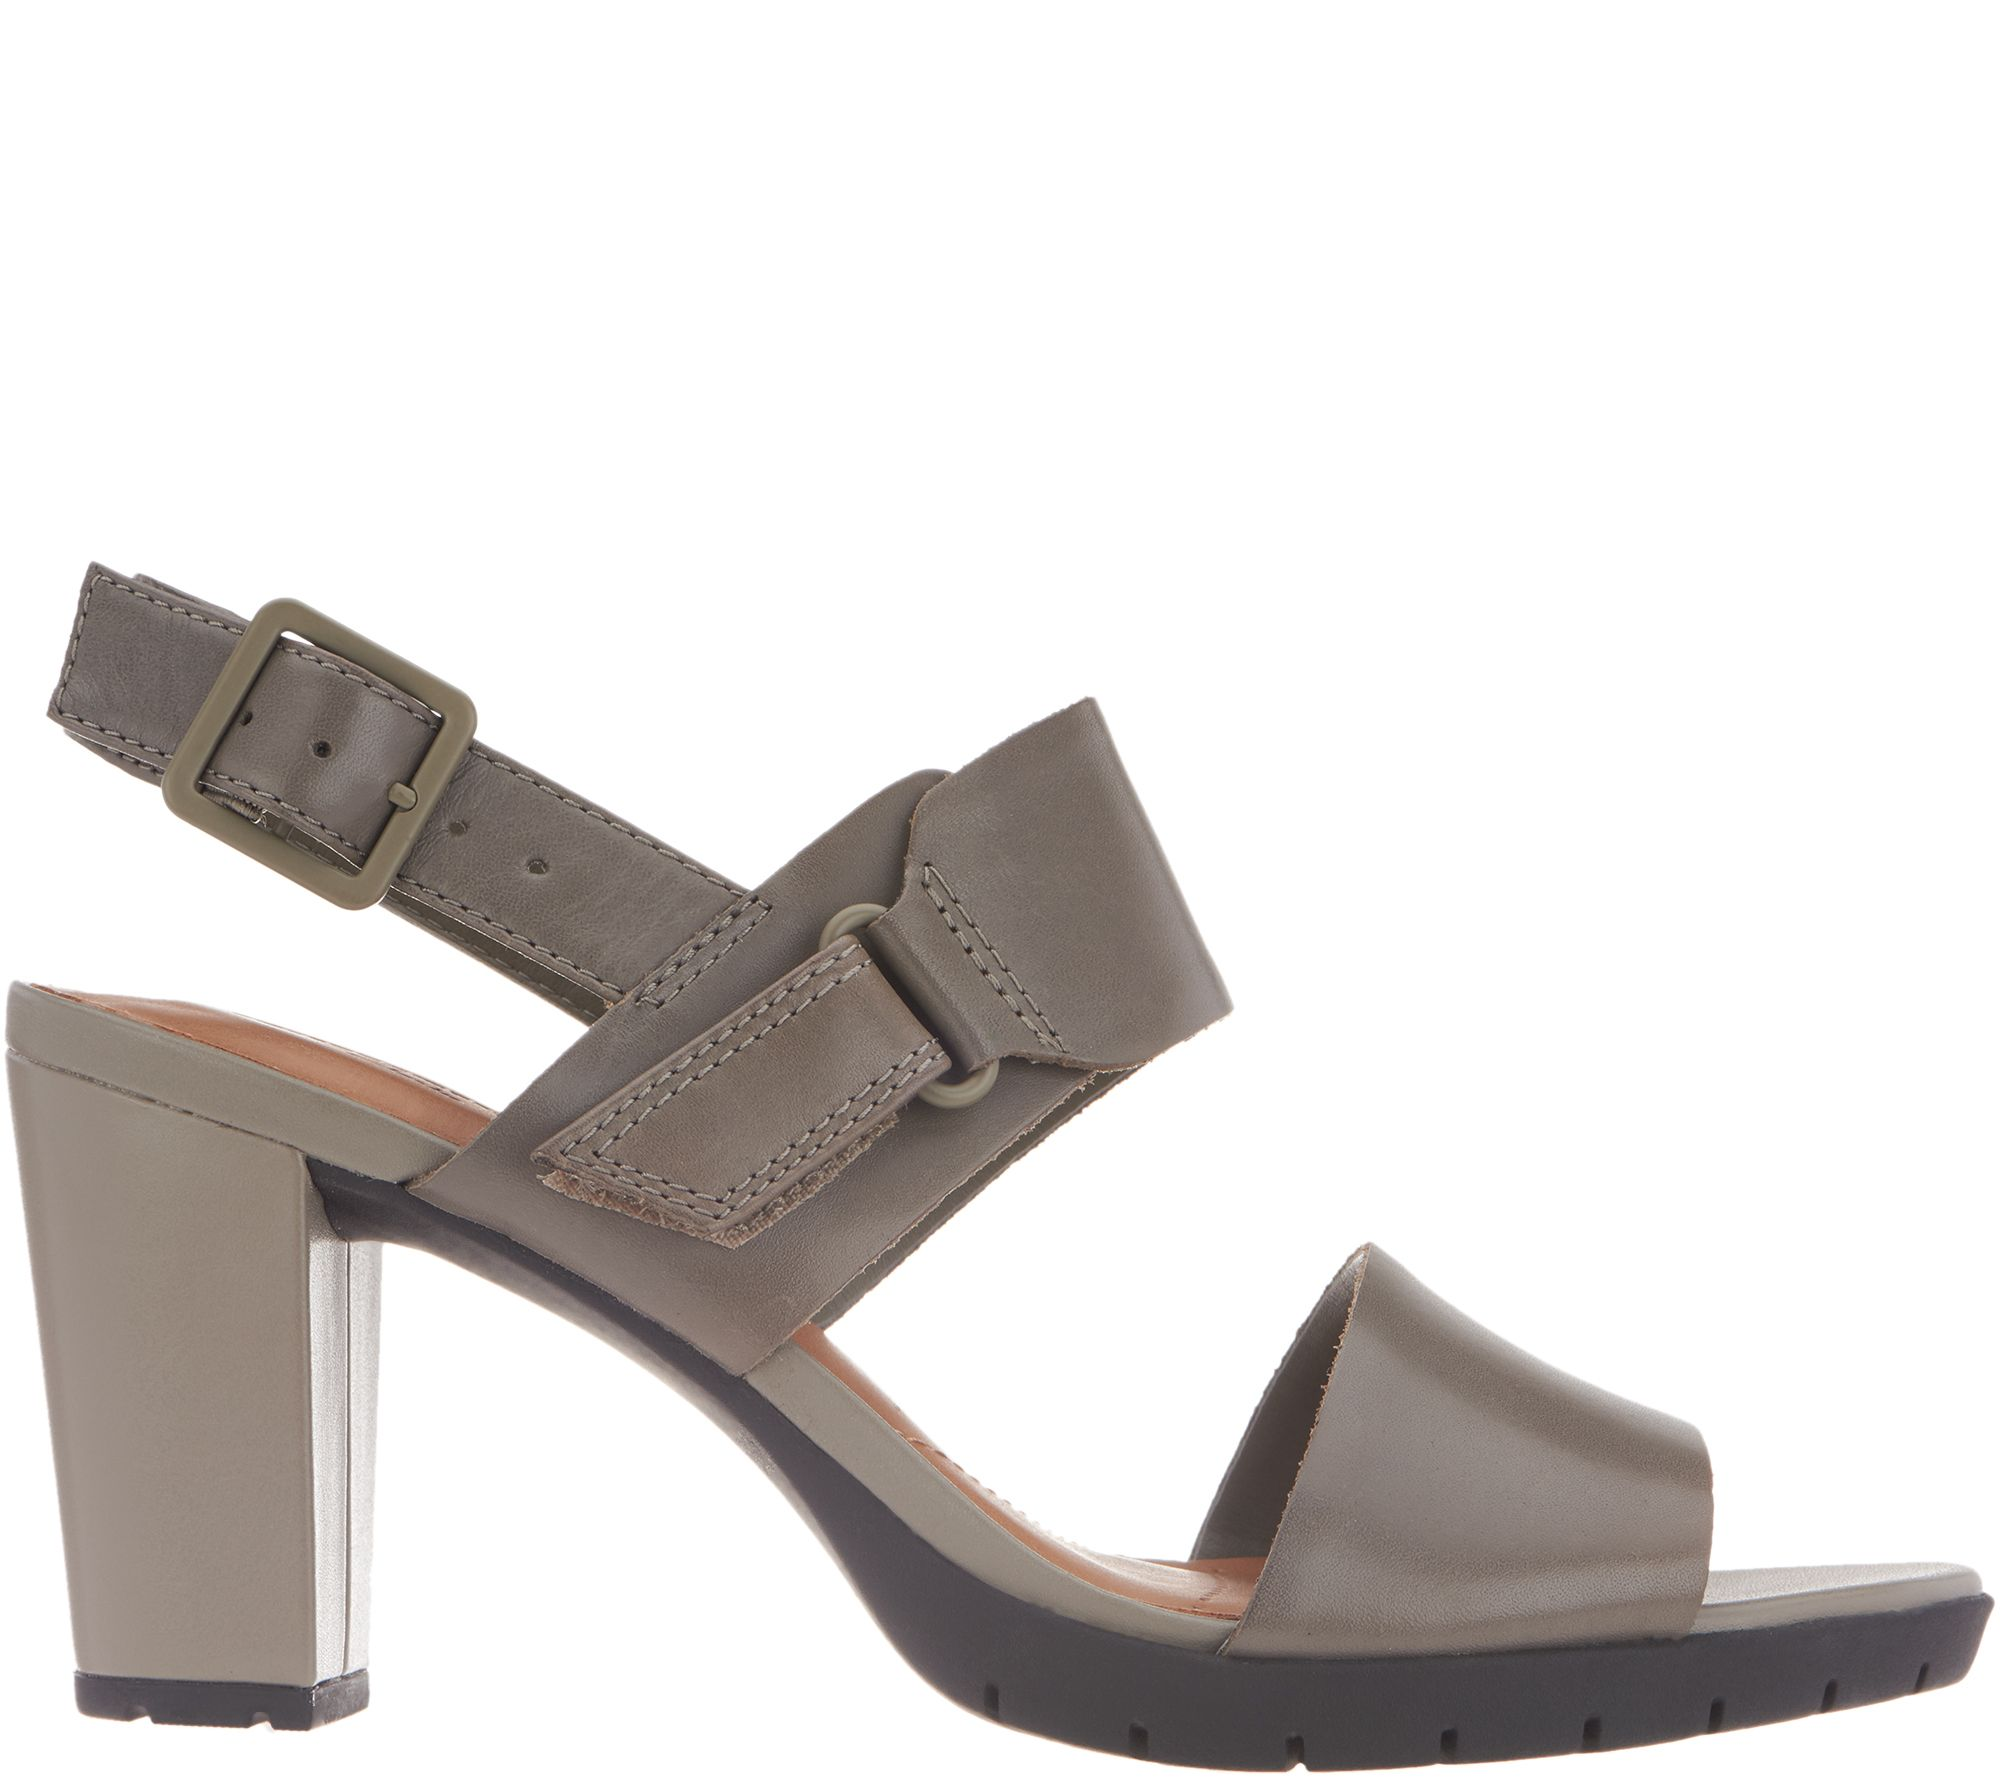 3dc08006ded Clarks Leather Block Heel Adjustable Sandals - Kurtley Shine - Page 1 — QVC .com